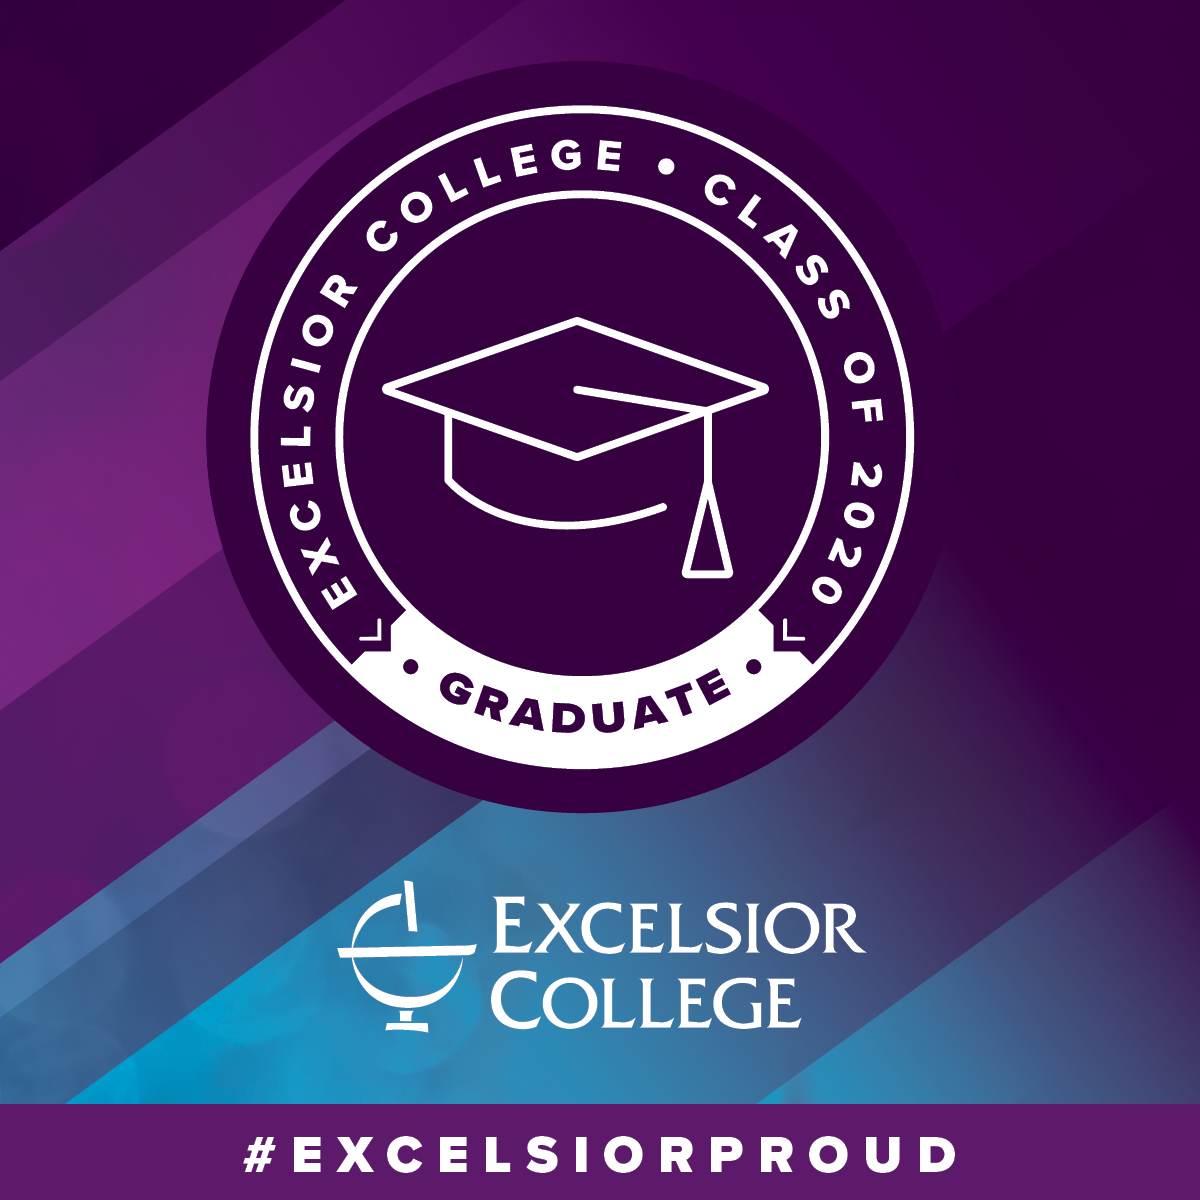 Excelsior College Class of 2020 #Excelsior Proud